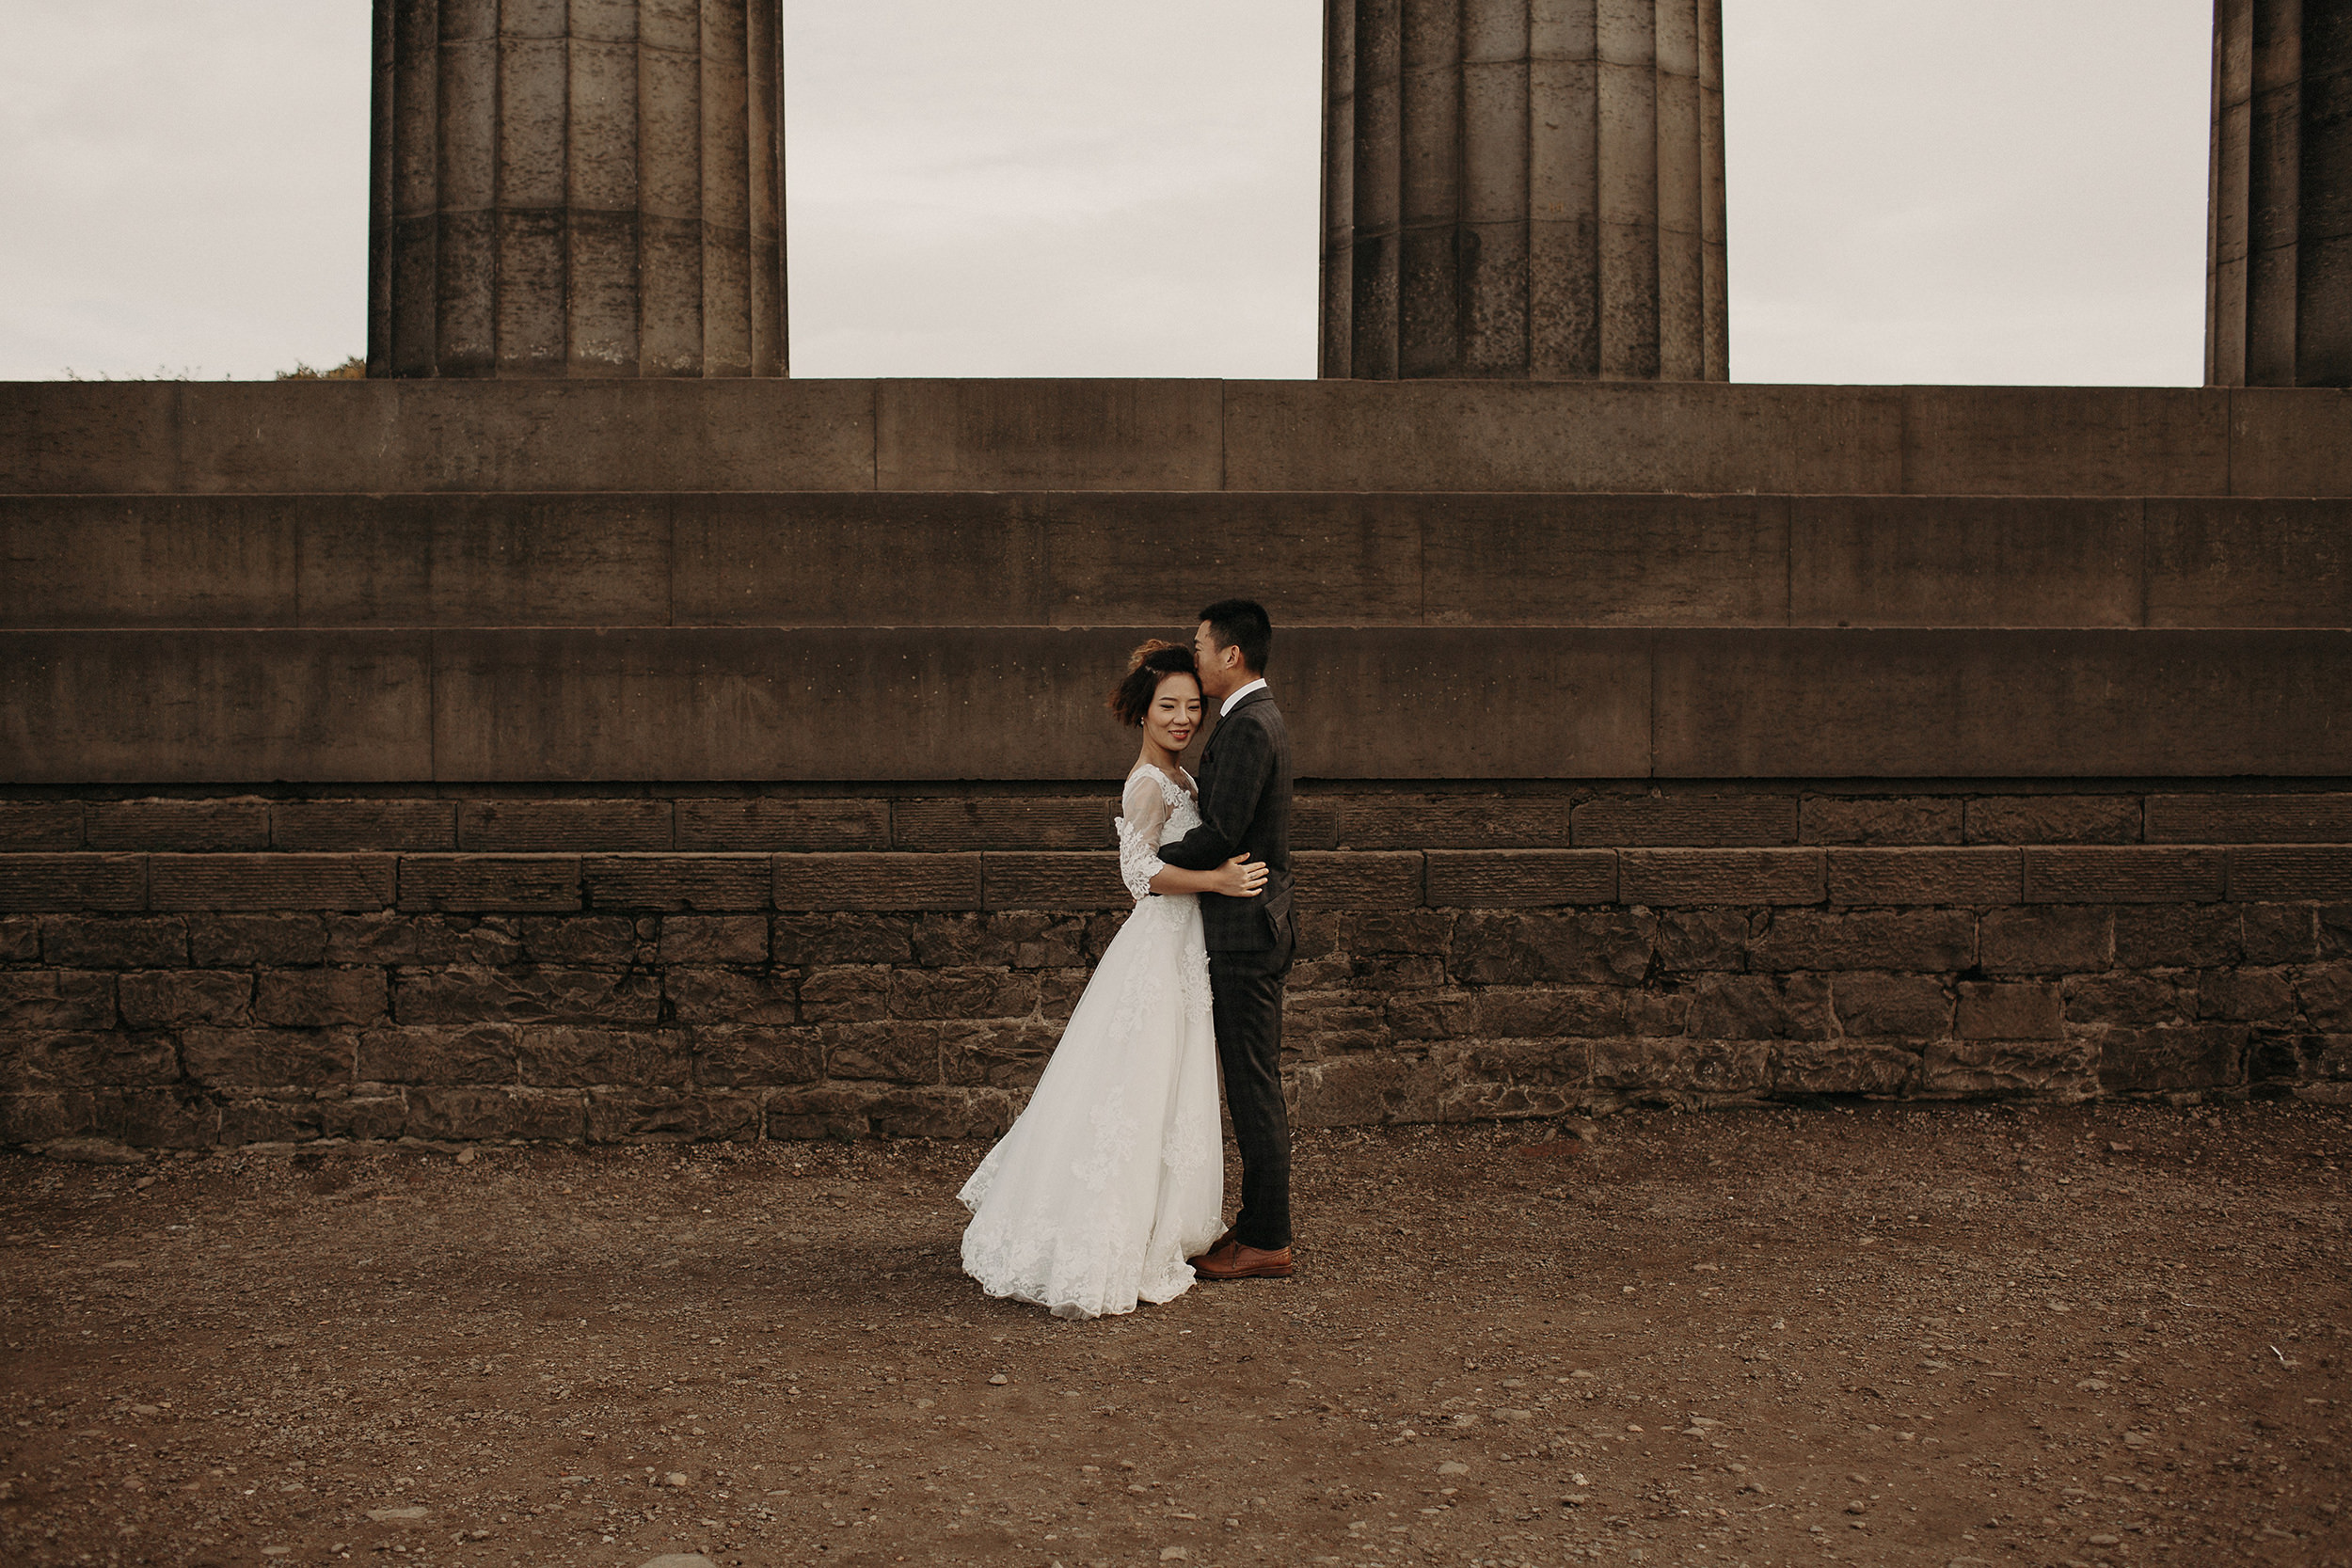 affordable wedding photography in barcelona